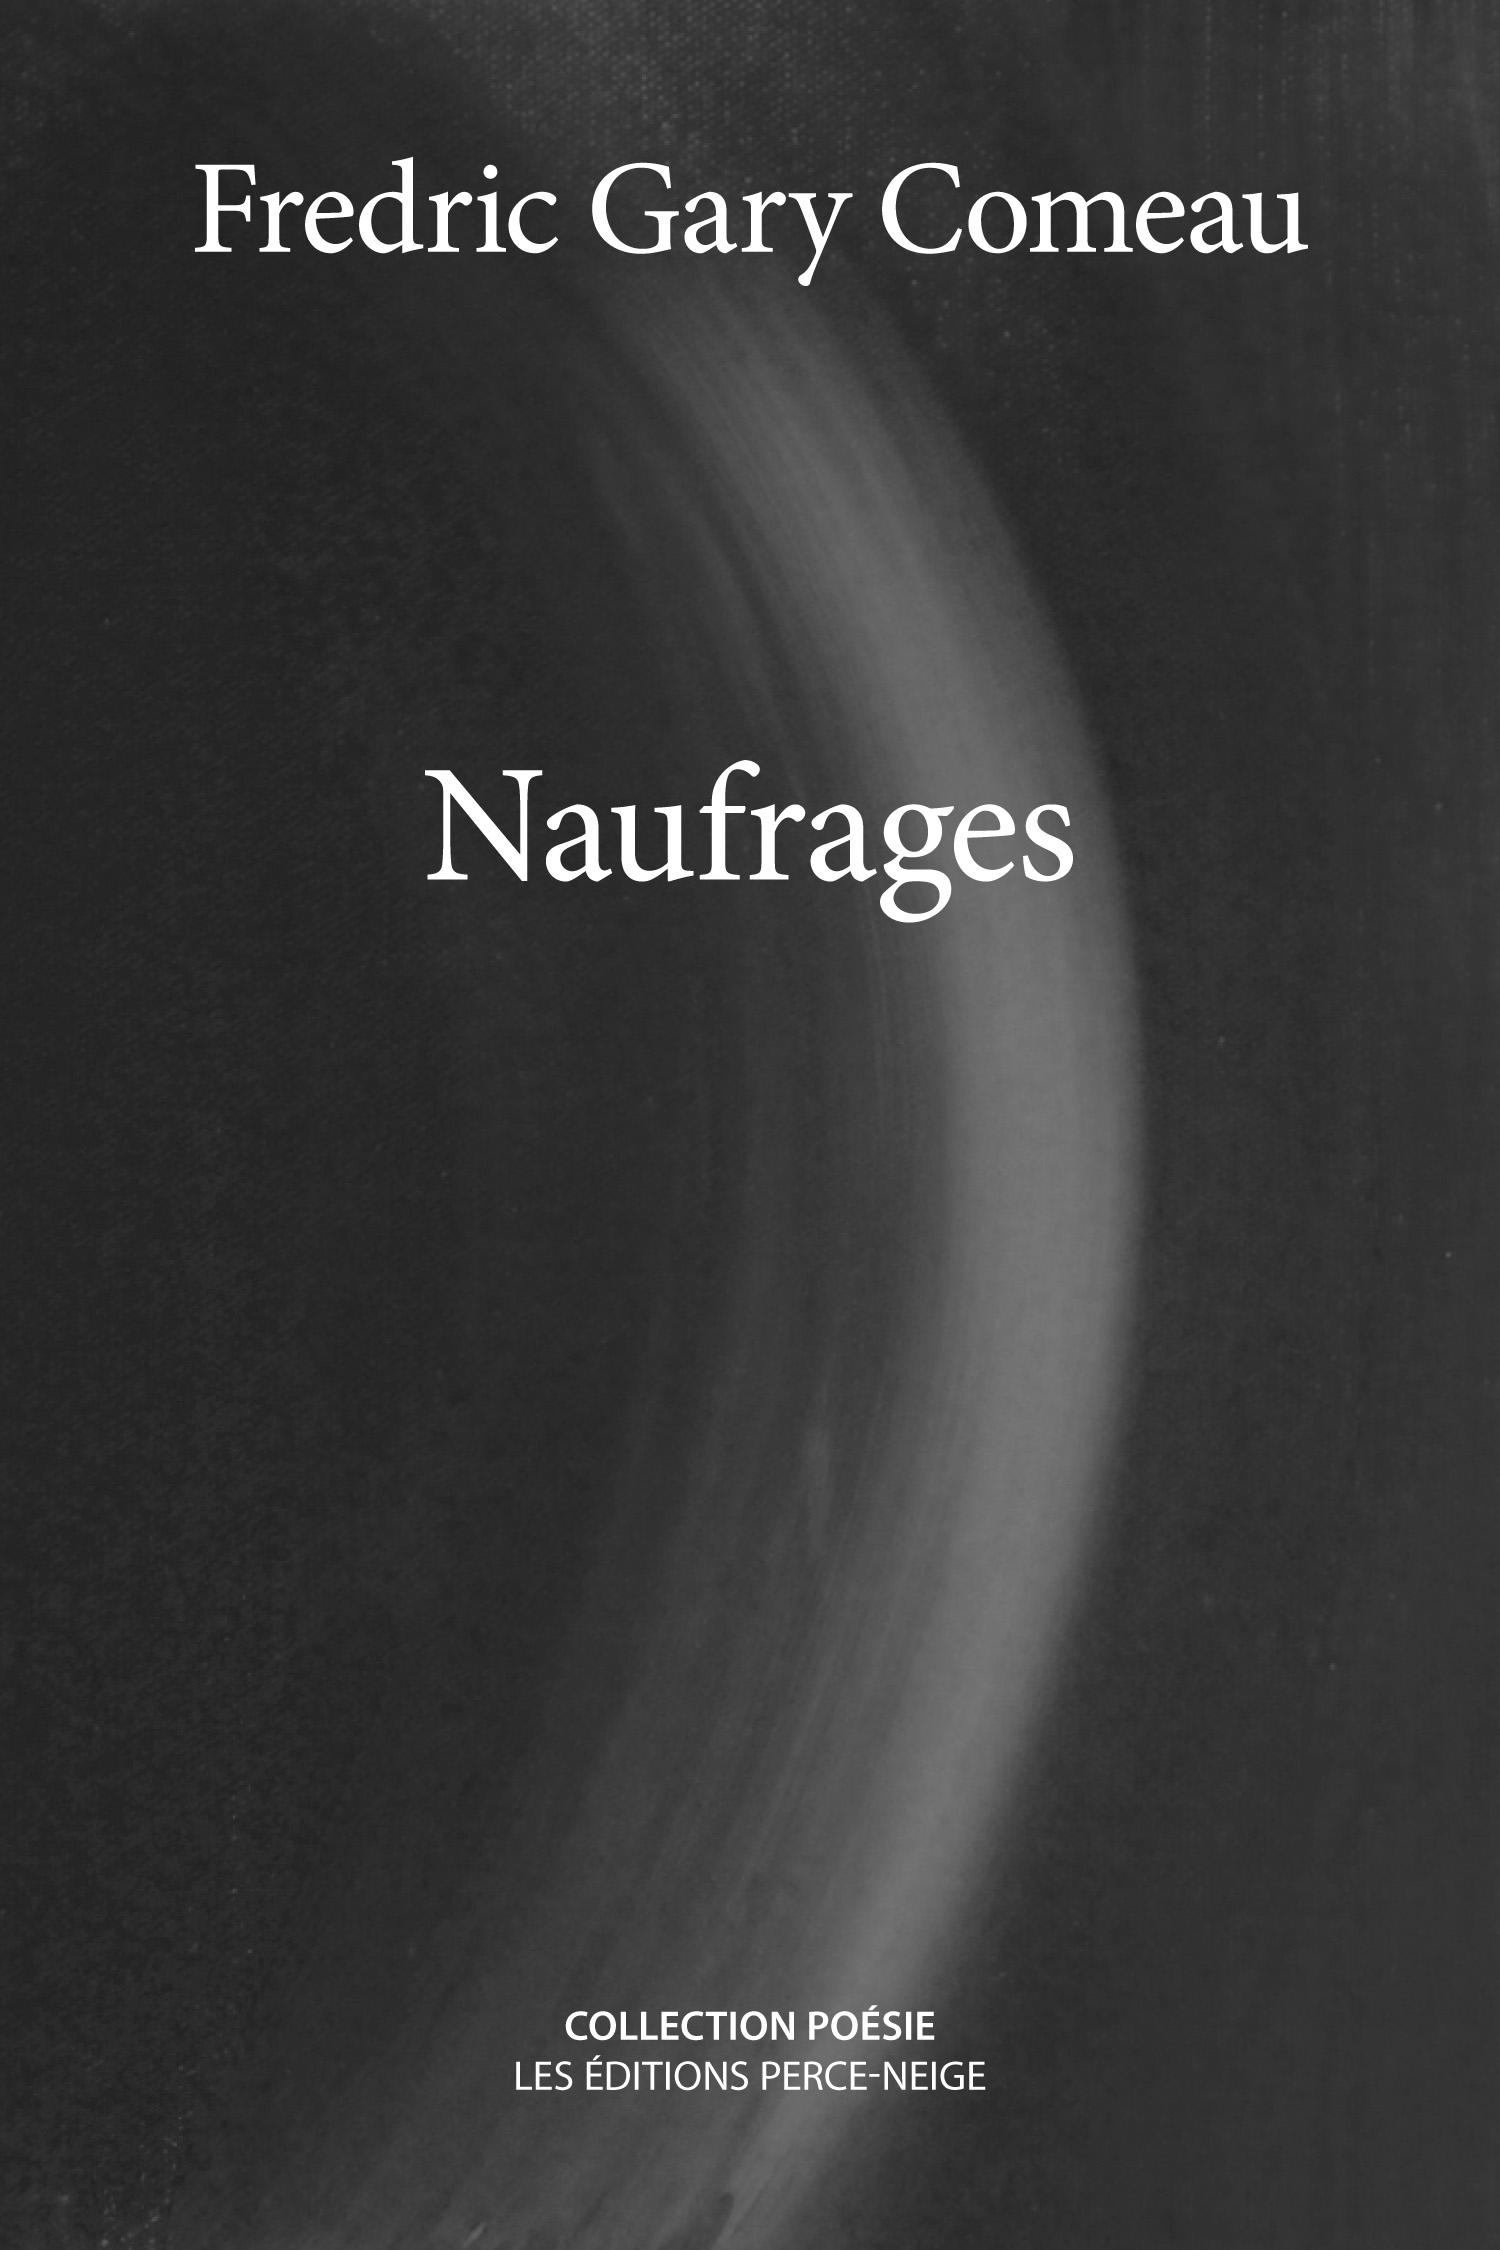 Naufrages Image 1